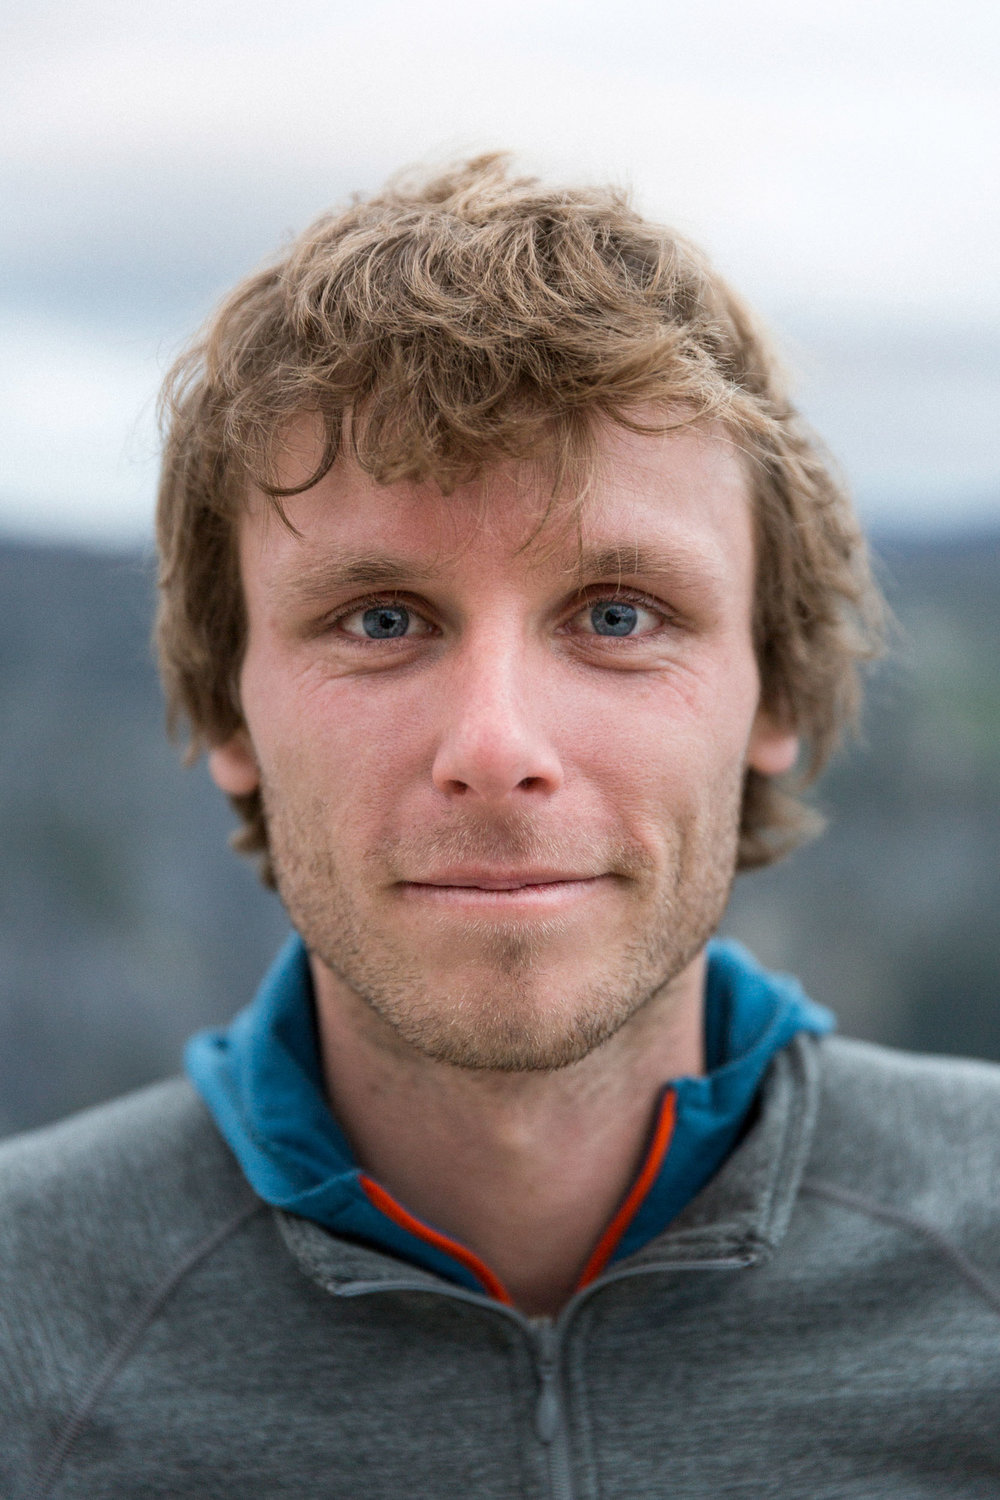 Samuel Crossley - filmmaker, photographer and climber_Samuel Crossley does whatever it takes to safely document athletes as they push themselves in remote areas and high risk situations.Big mountains and tired climbers fuel his creativity as he travels full-time out of his Sprinter Van; custom designed and built by himself.Samuel's commercial and editorial work has been for National Geographic, Google, Red Bull Media House, The North Face, REI, Reel Rock, and ABC News, among others.Inspired by Olympic Gold Medalist Matthew Mitcham, Samuel lives his professional life as an openly gay man and is passionate about revealing diversity within the climbing community.As technology evolves, the process of learning new tools excites Samuel. Shooting with anything from an iPhone to an Arri Amira, his breadth of technical knowledge enables him to focus on what's important, storytelling._Photograph by Jimmy Chin